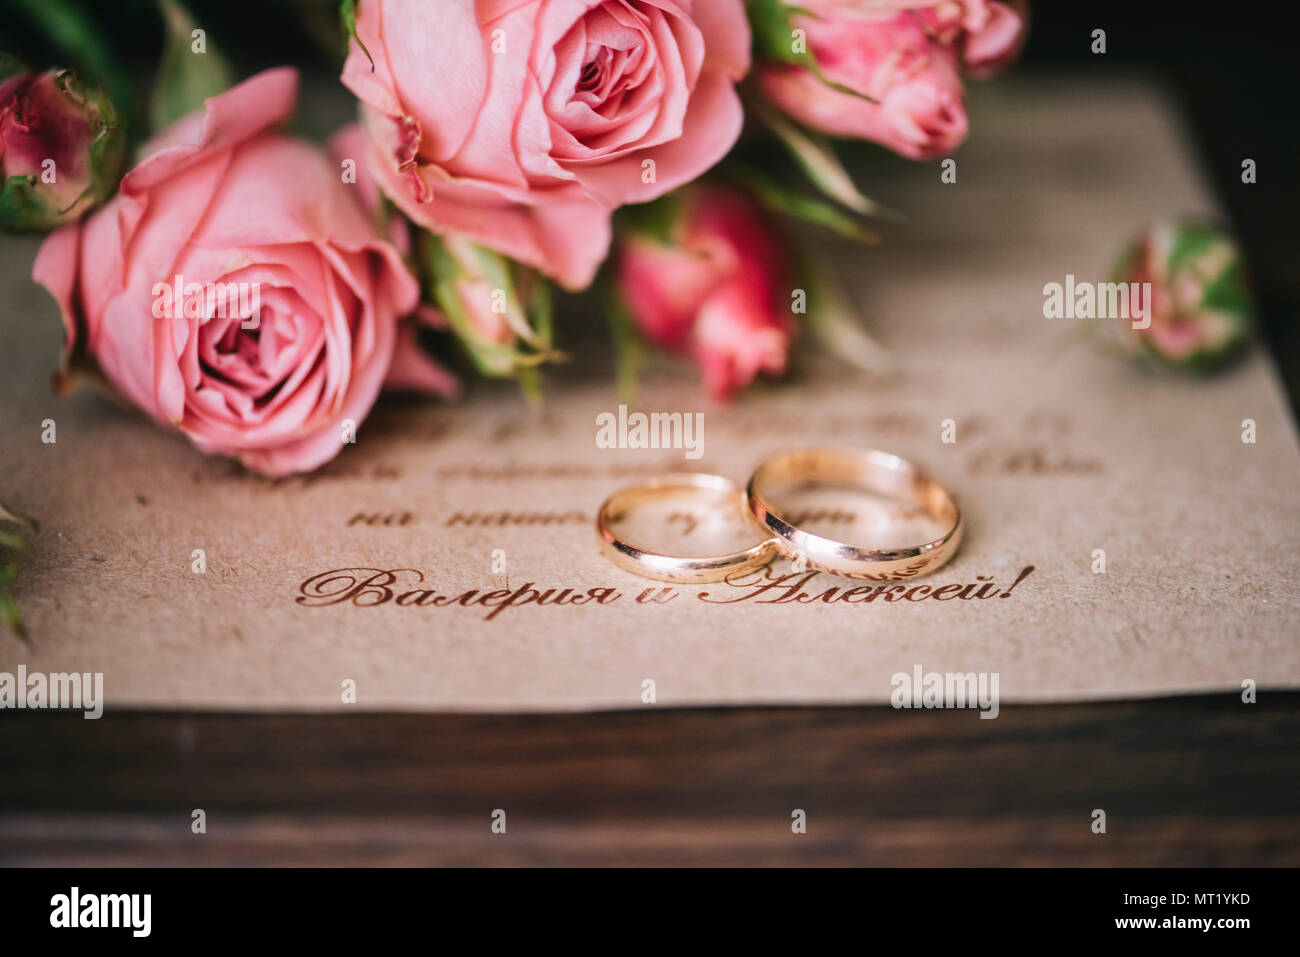 https www alamy com a pair of golden wedding rings on the wedding invitation card with some pink roses on the background image186899089 html